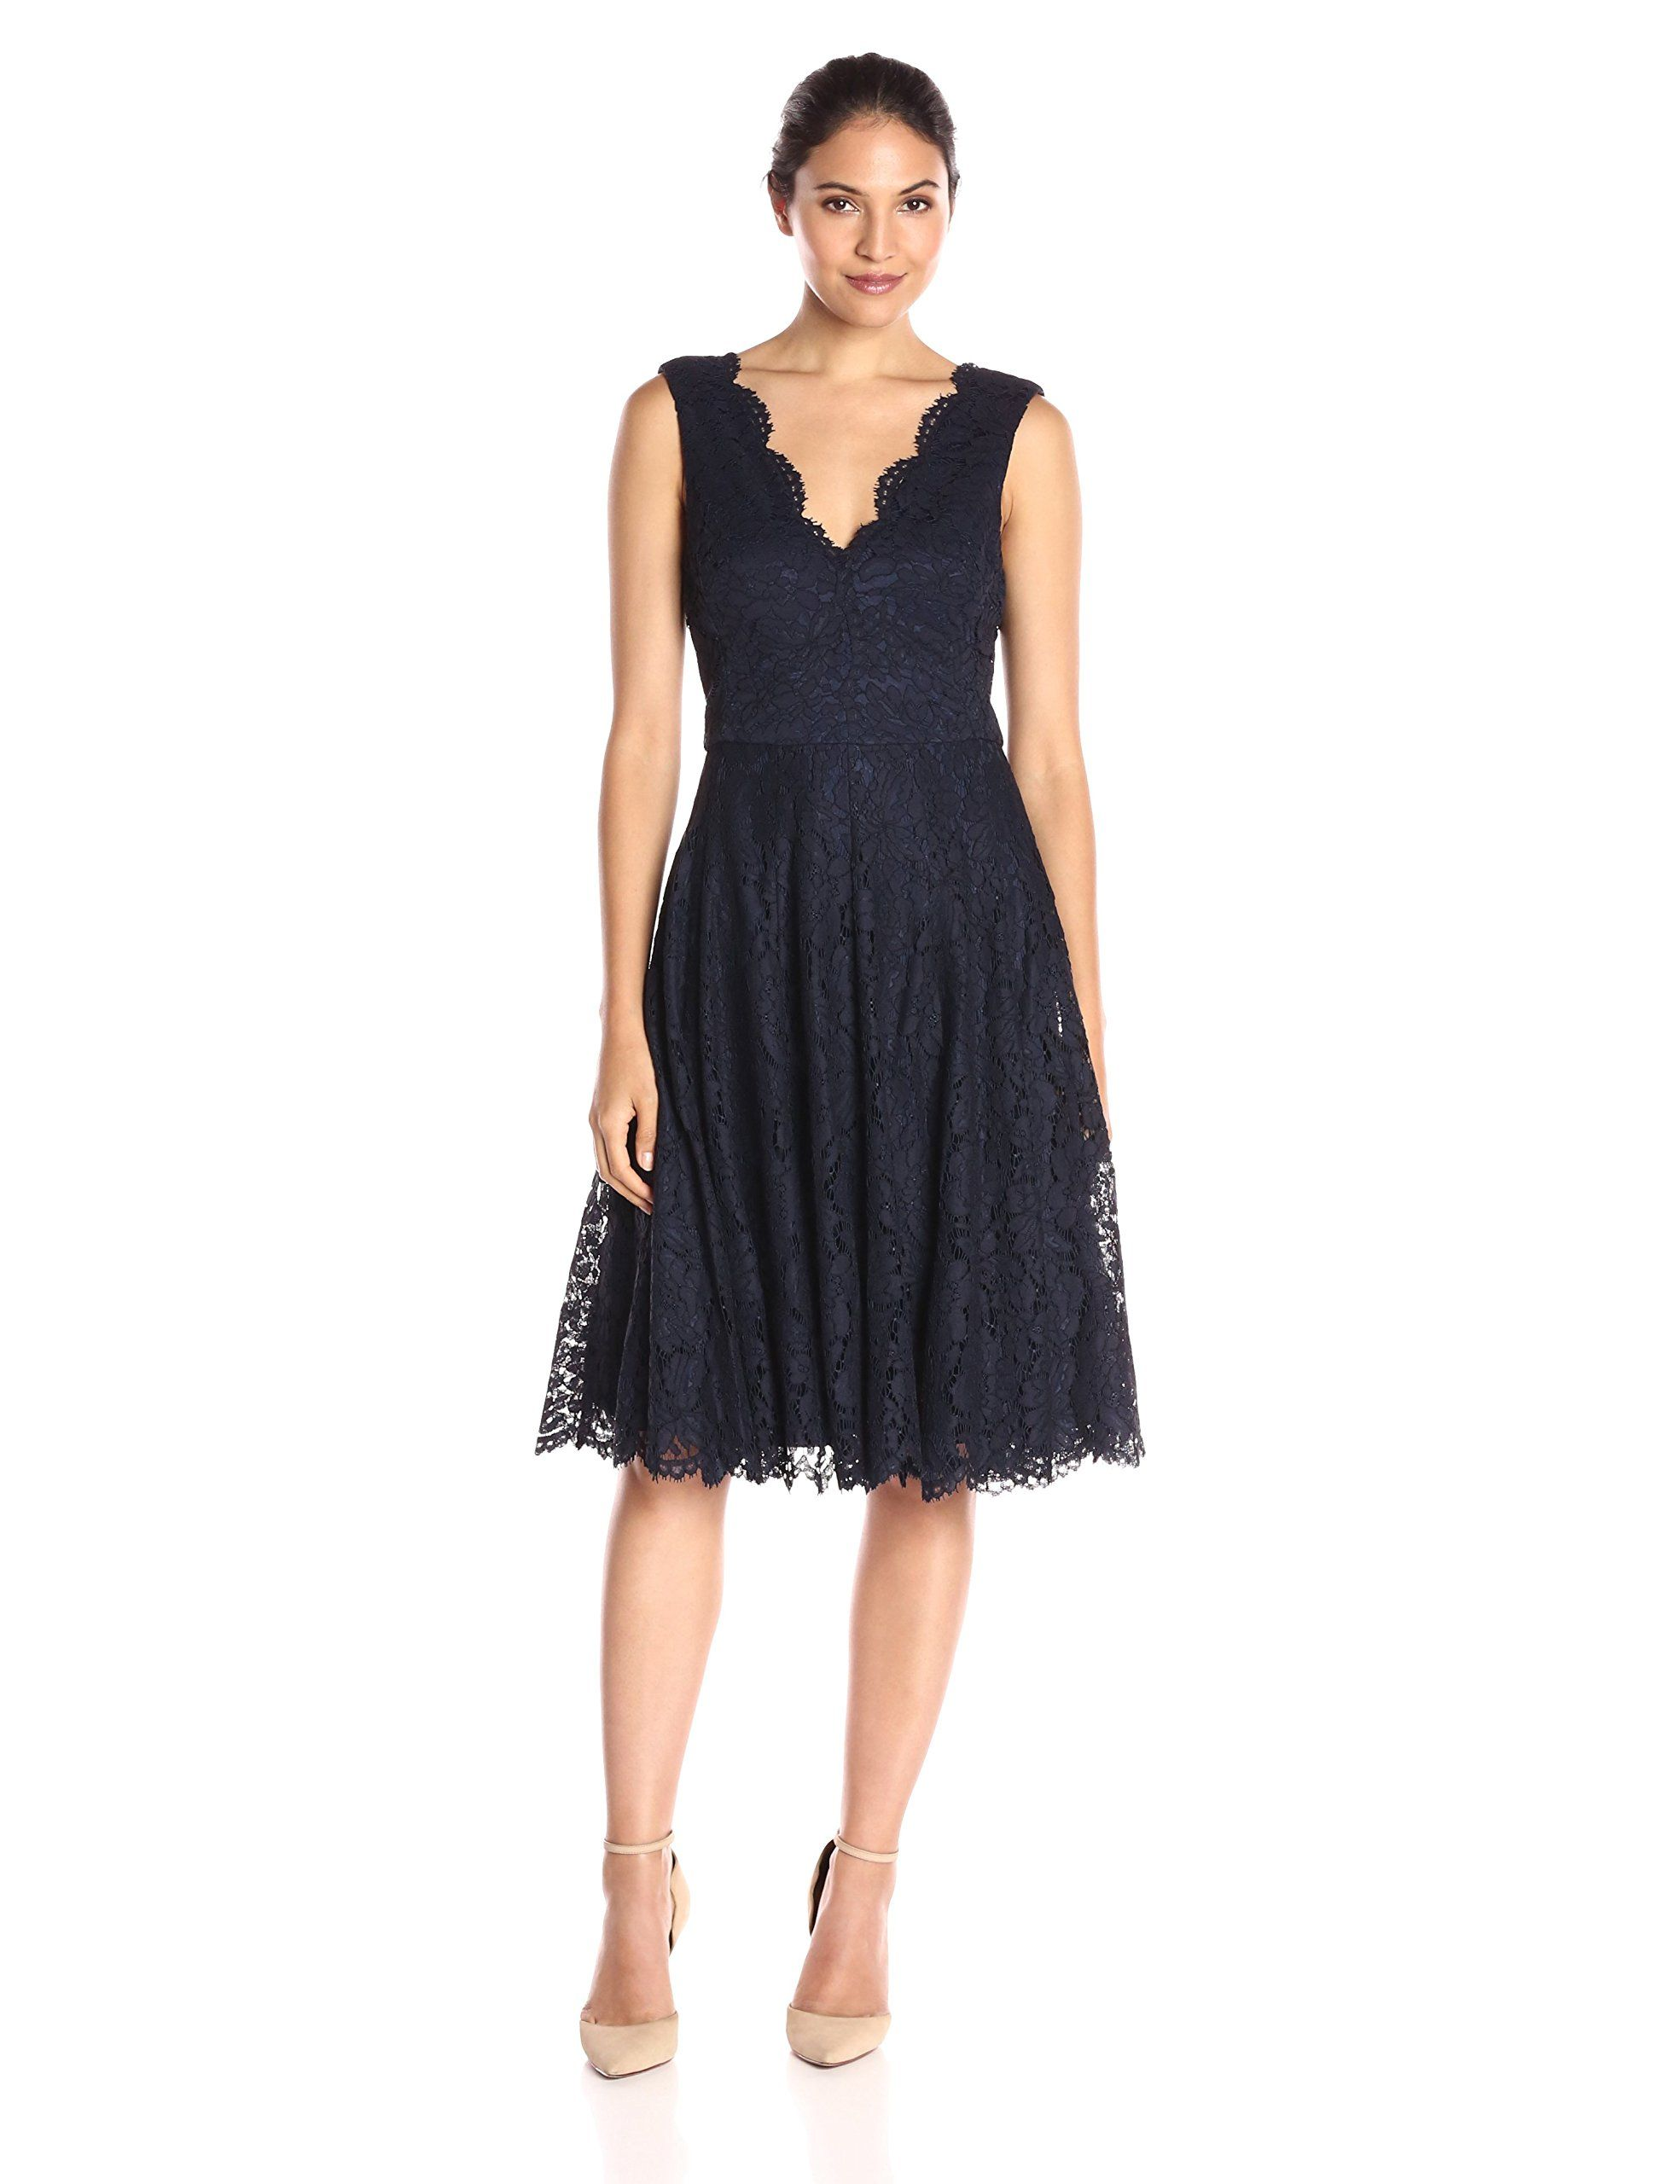 flared ruffle maxi dress - Black Vera Wang 7uEi5KrA6